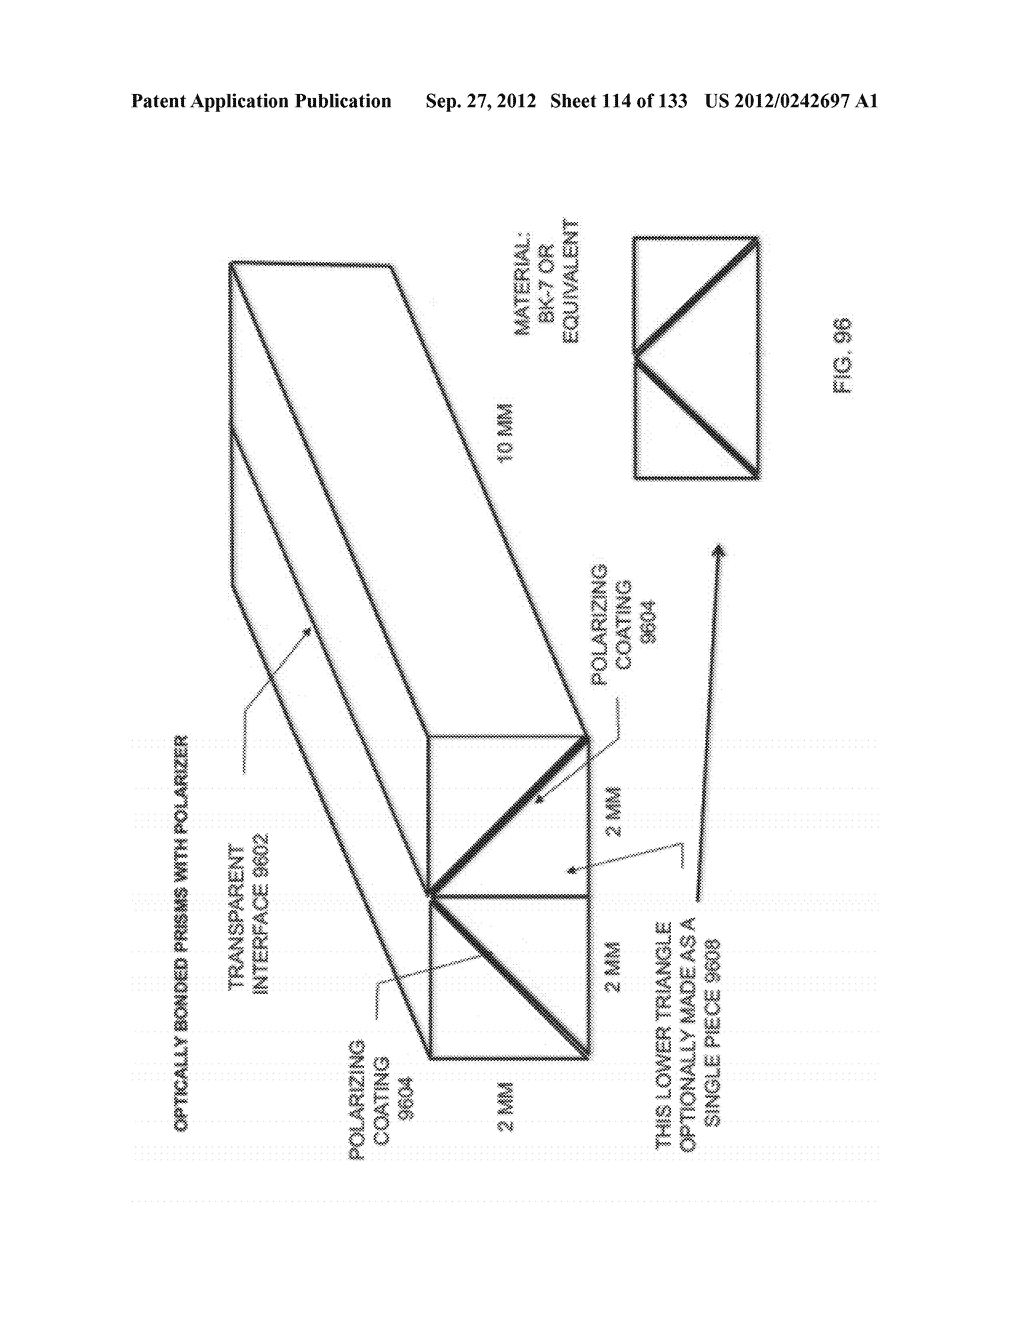 SEE-THROUGH NEAR-EYE DISPLAY GLASSES WITH THE OPTICAL ASSEMBLY INCLUDING     ABSORPTIVE POLARIZERS OR ANTI-REFLECTIVE COATINGS TO REDUCE STRAY LIGHT - diagram, schematic, and image 115